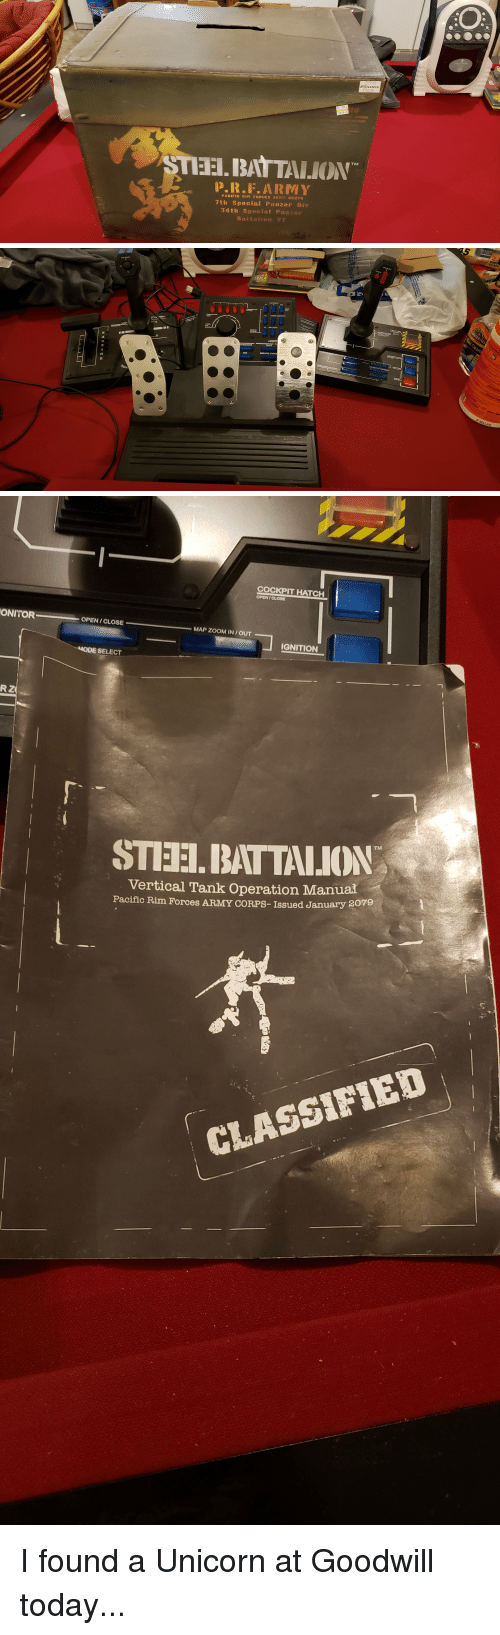 classified: EBGAMES  STEEI. BAT TALION  P.R.F.ARMY  PACIFIC RI FORCES ARMY CORPS  7th Special Panzer Div  34t:h Special Panzer  B a   AIGHT BLOC  5  CENT  3  SUB  MAGAZINE CHANG   COCKPIT HATCH  OPEN/CLOSE  ONITOR  OPEN/CLOSE  MAP ZOOM IN/OUT  IGNITION  SELECT  STIEH.BATTALION  Vertical Tank Operation Manual  Pacific Rim Forces ARMY CORPS-Issued January  2079  翥.  CLASSIFIED I found a Unicorn at Goodwill today...